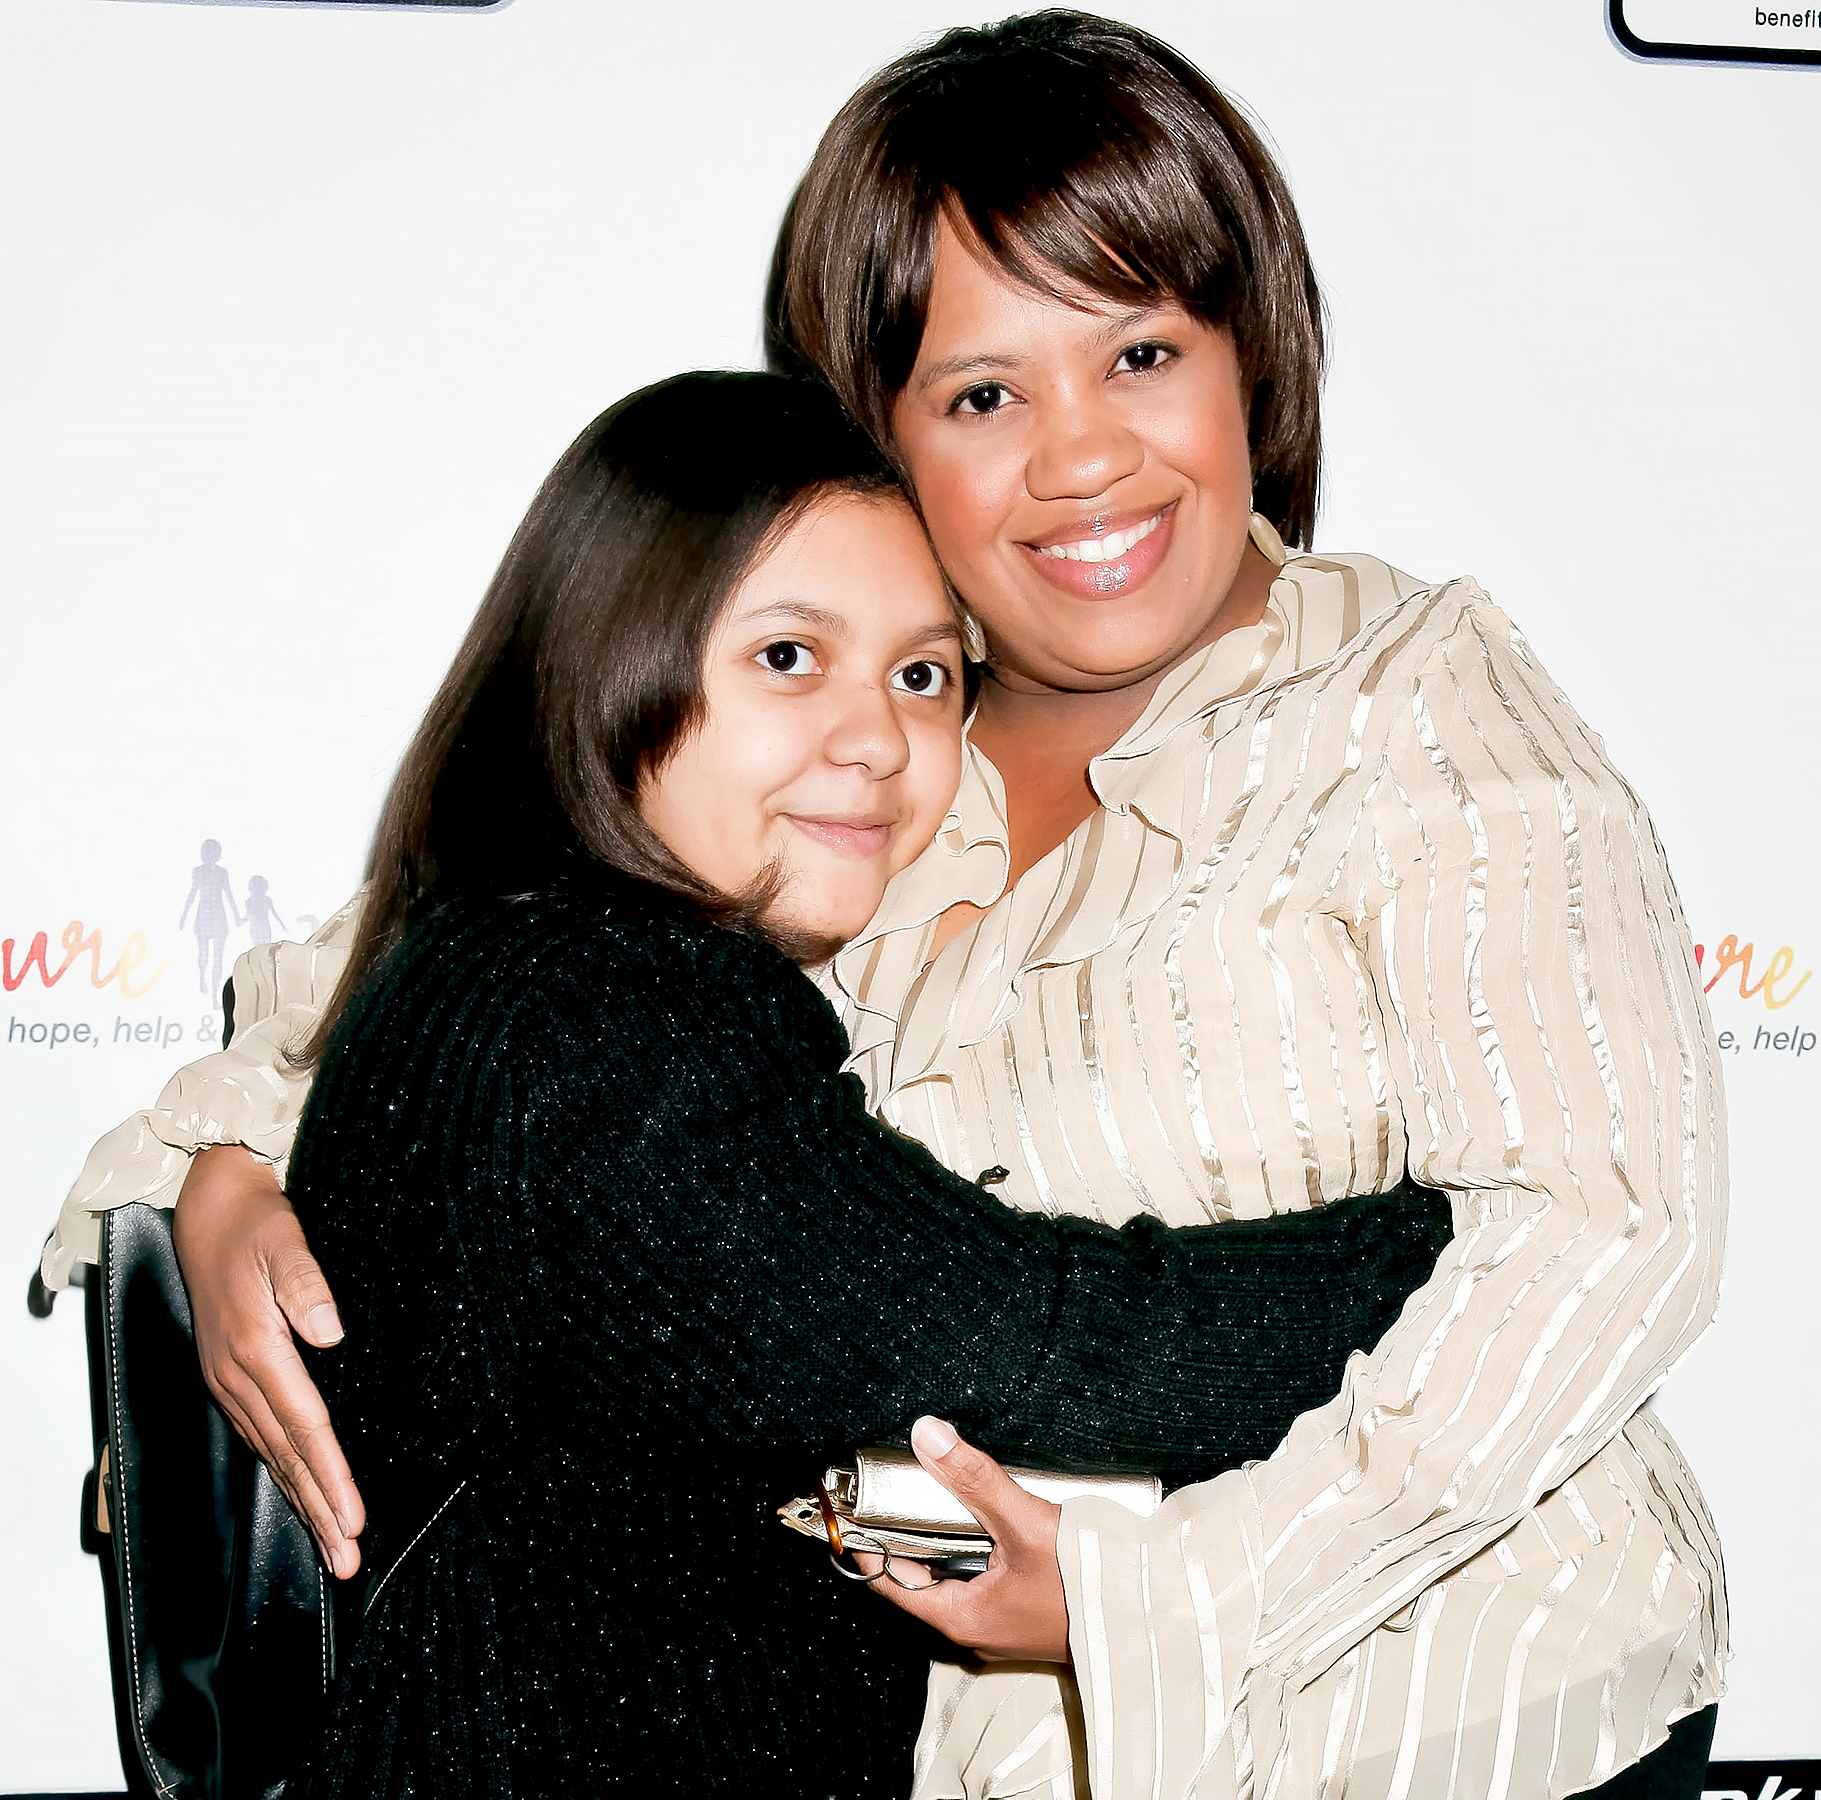 Chandra Wilson and daughter Sarina attend the Rock-N-Roll Marathon pre-race benefit dinner with CureMito! and Chandra Wilson at Brookside Golf Club on February 18, 2012 in Pasadena, California.